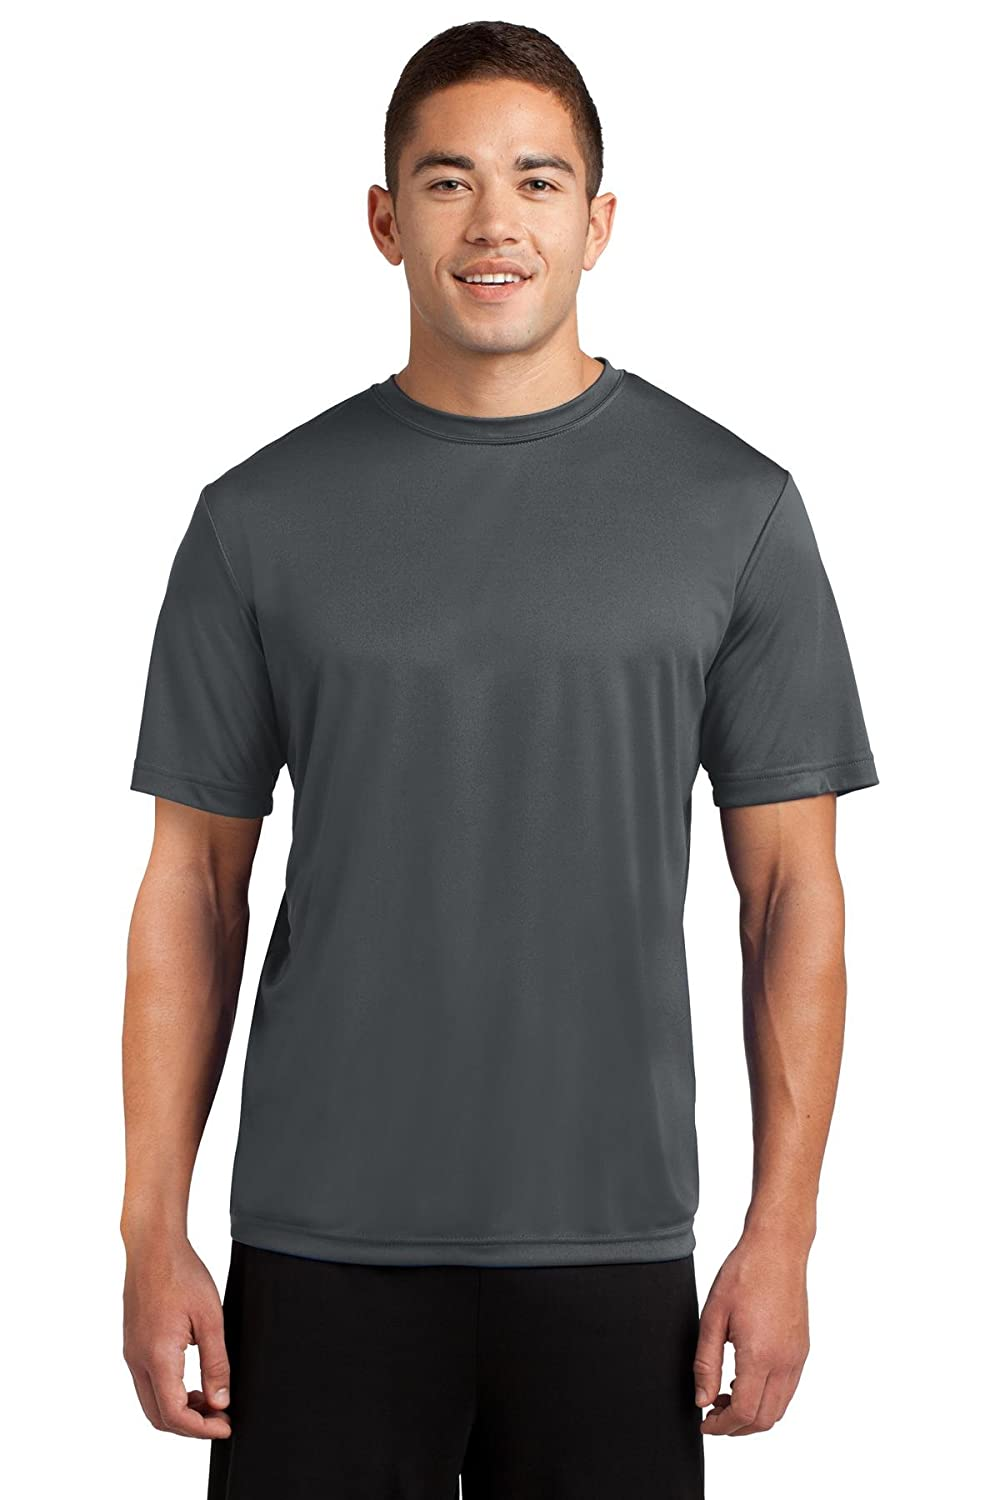 Dri-Tek Men's Big & Tall Short Sleeve Moisture Wicking Athletic T-Shirt CCDT1